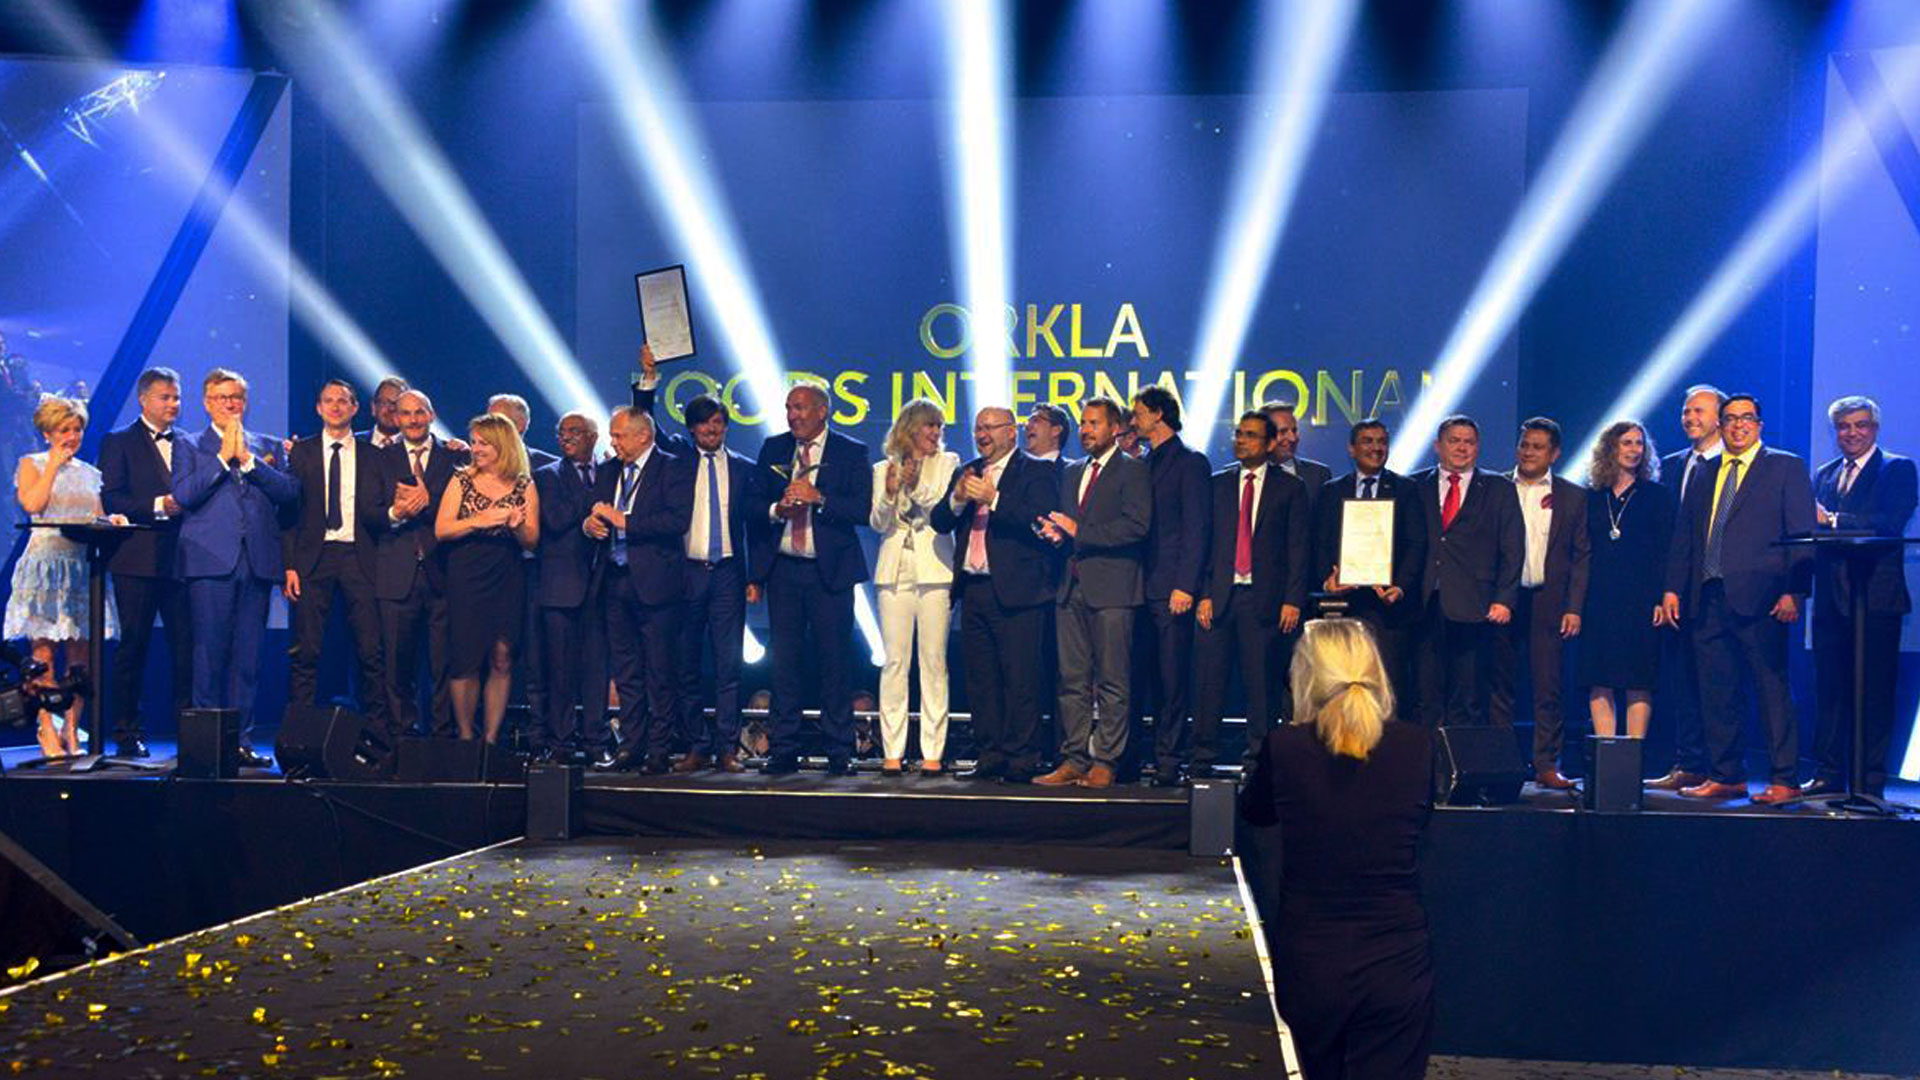 MTR FOODS, FELIX AUSTRIA AND ORKLA FOODS CESCKO A SLOVENSKO WIN THE PRESTIGIOUS ORKLA GROWTH PRIZE AS A RECOGNITION FOR FANTASTIC DEVELOPMENT